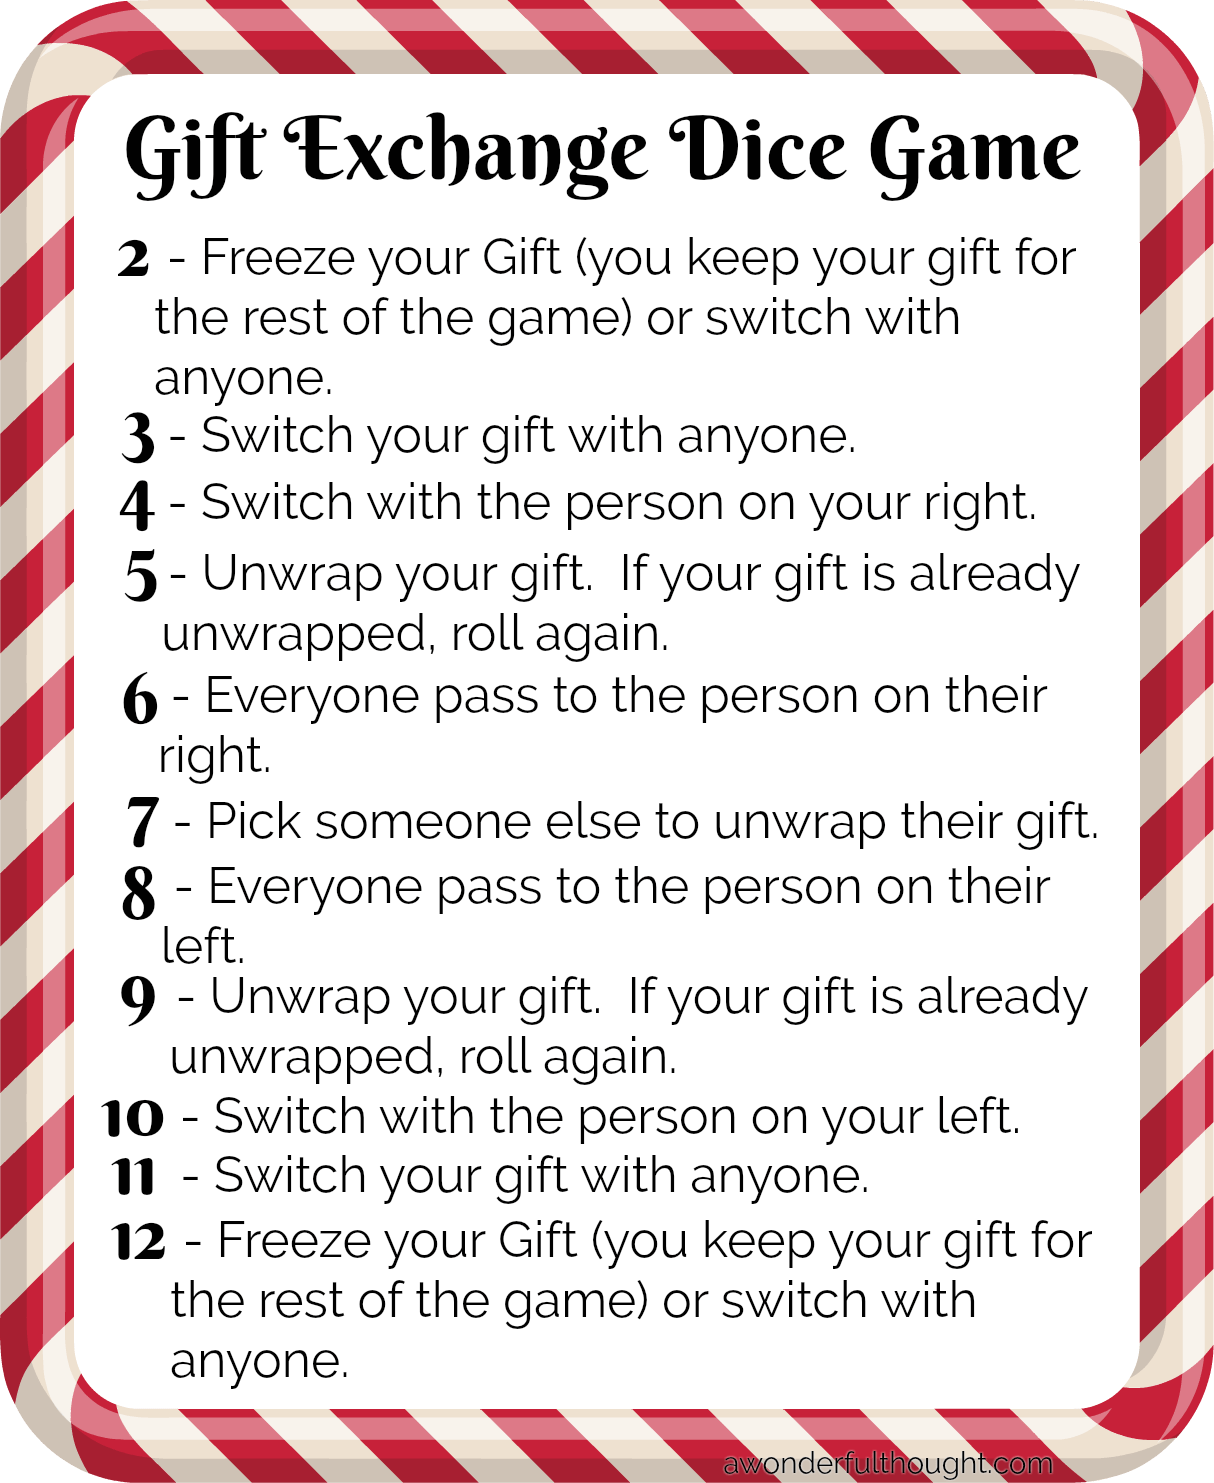 10 Fun Christmas Gift Exchange Ideas in lieu of White Elephant #partygames # giftexchange #  sc 1 st  A Wonderful Thought & Christmas Gift Exchange Ideas - A Wonderful Thought